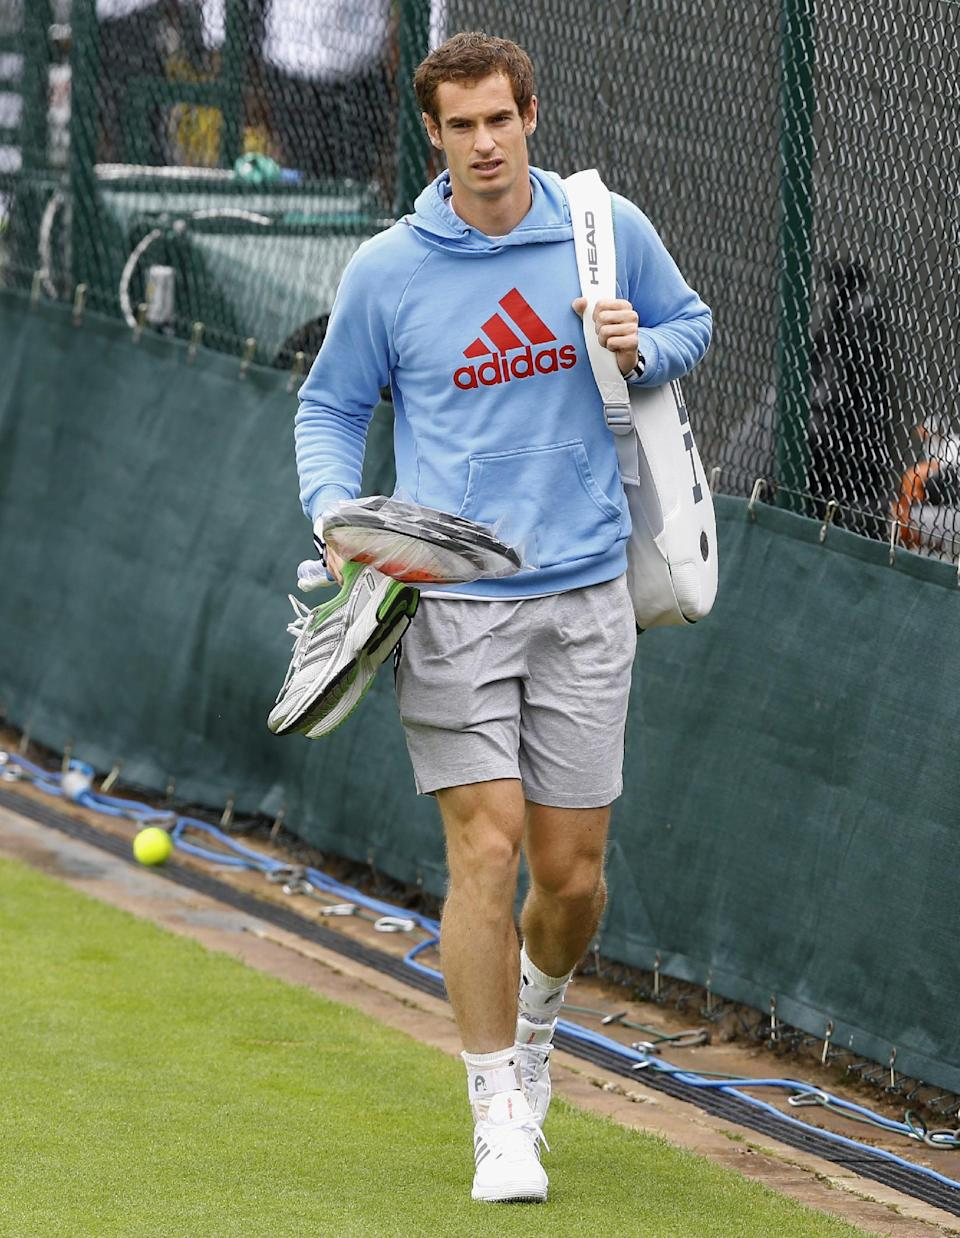 Andy Murray of Britain arrives for a training session at the Wimbledon tennis championships in London, Sunday, June 23, 2013. The Championships start Monday, with defending men's champion Roger Federer of Switzerland attempting to win the title for the eighth time. (AP Photo/Kirsty Wigglesworth)